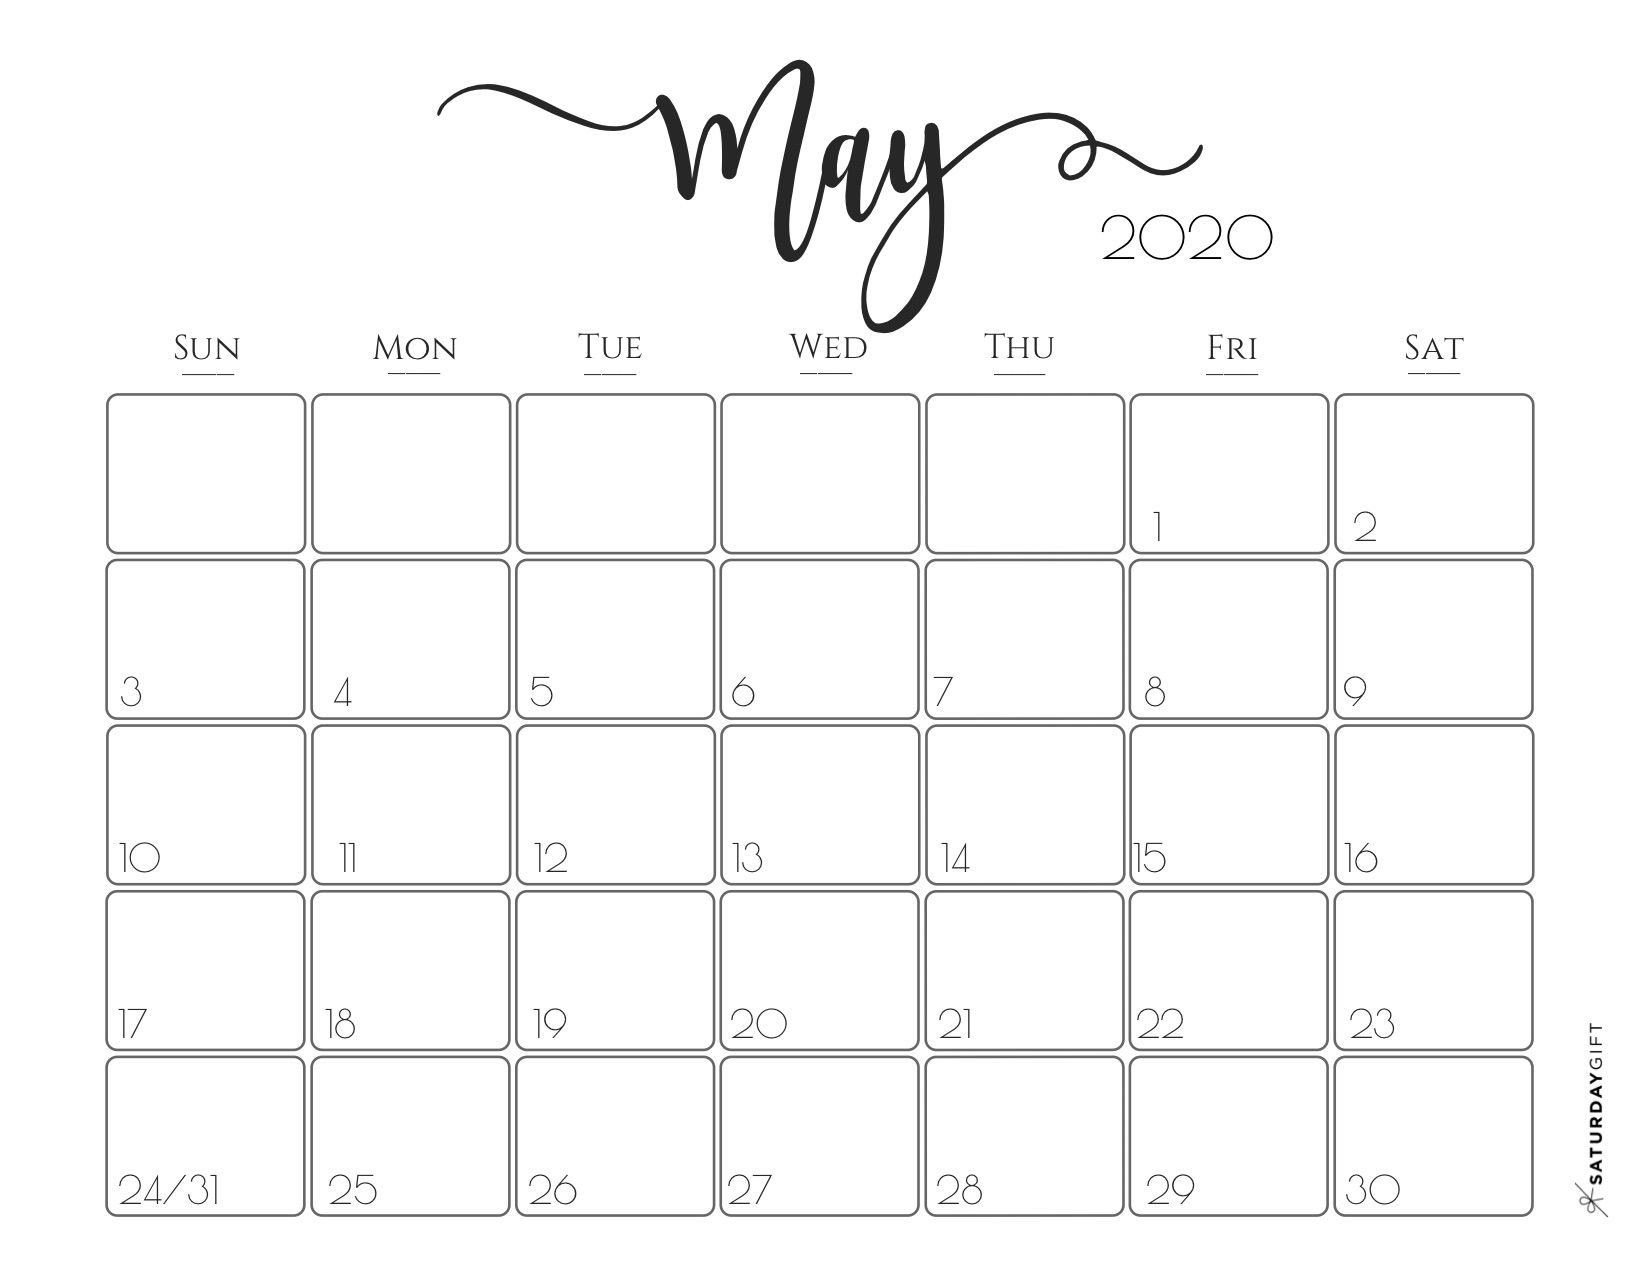 33 Printable Free May 2020 Calendars With Holidays - Onedesblog